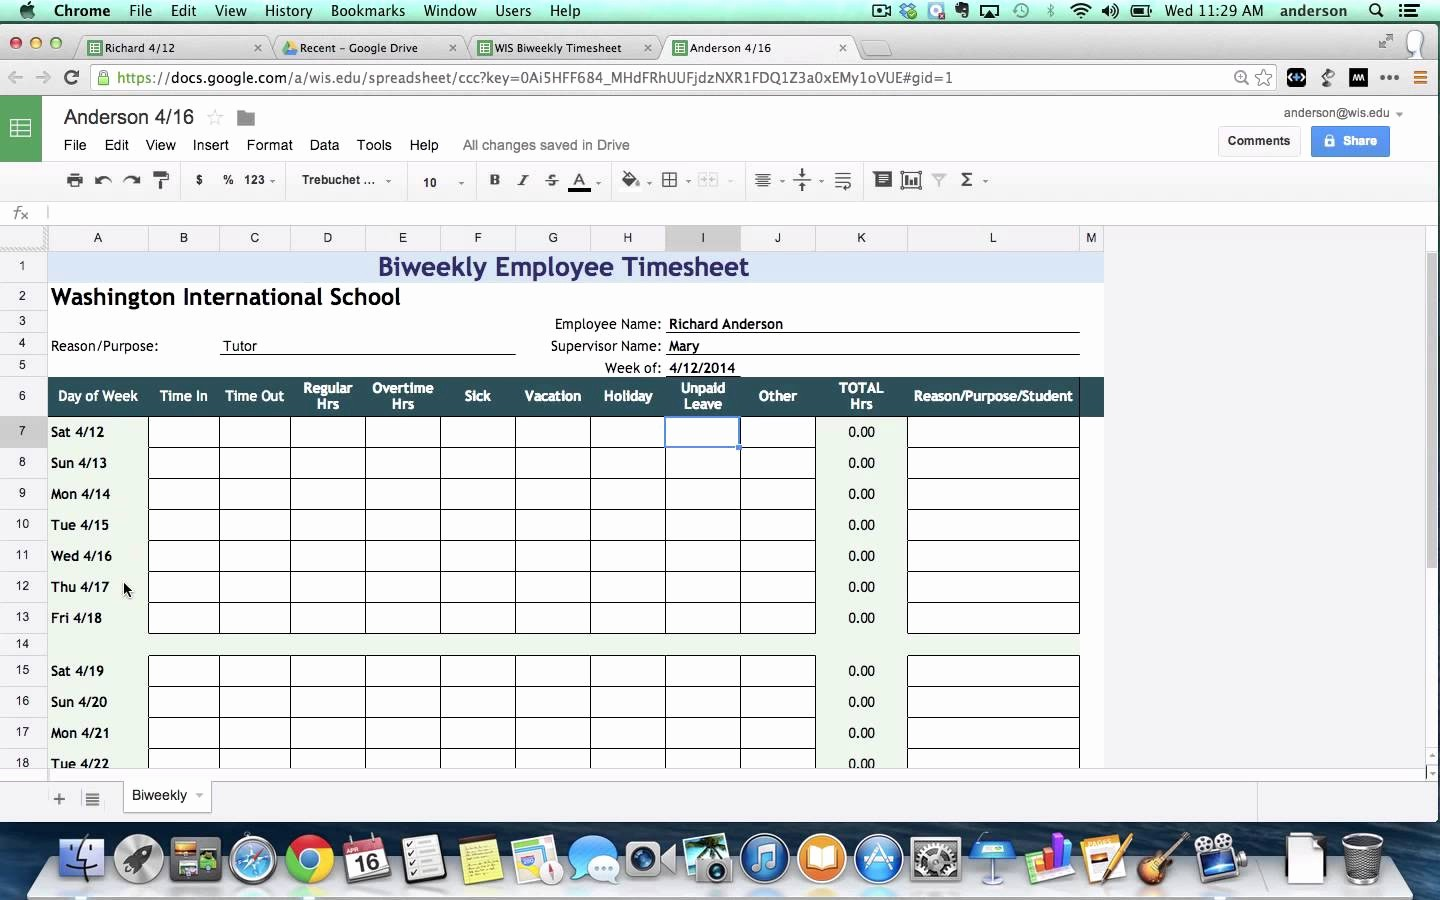 Monthly Timesheet Template Google Docs Elegant Google Spreadsheet Templates Timesheet Google Spreadshee